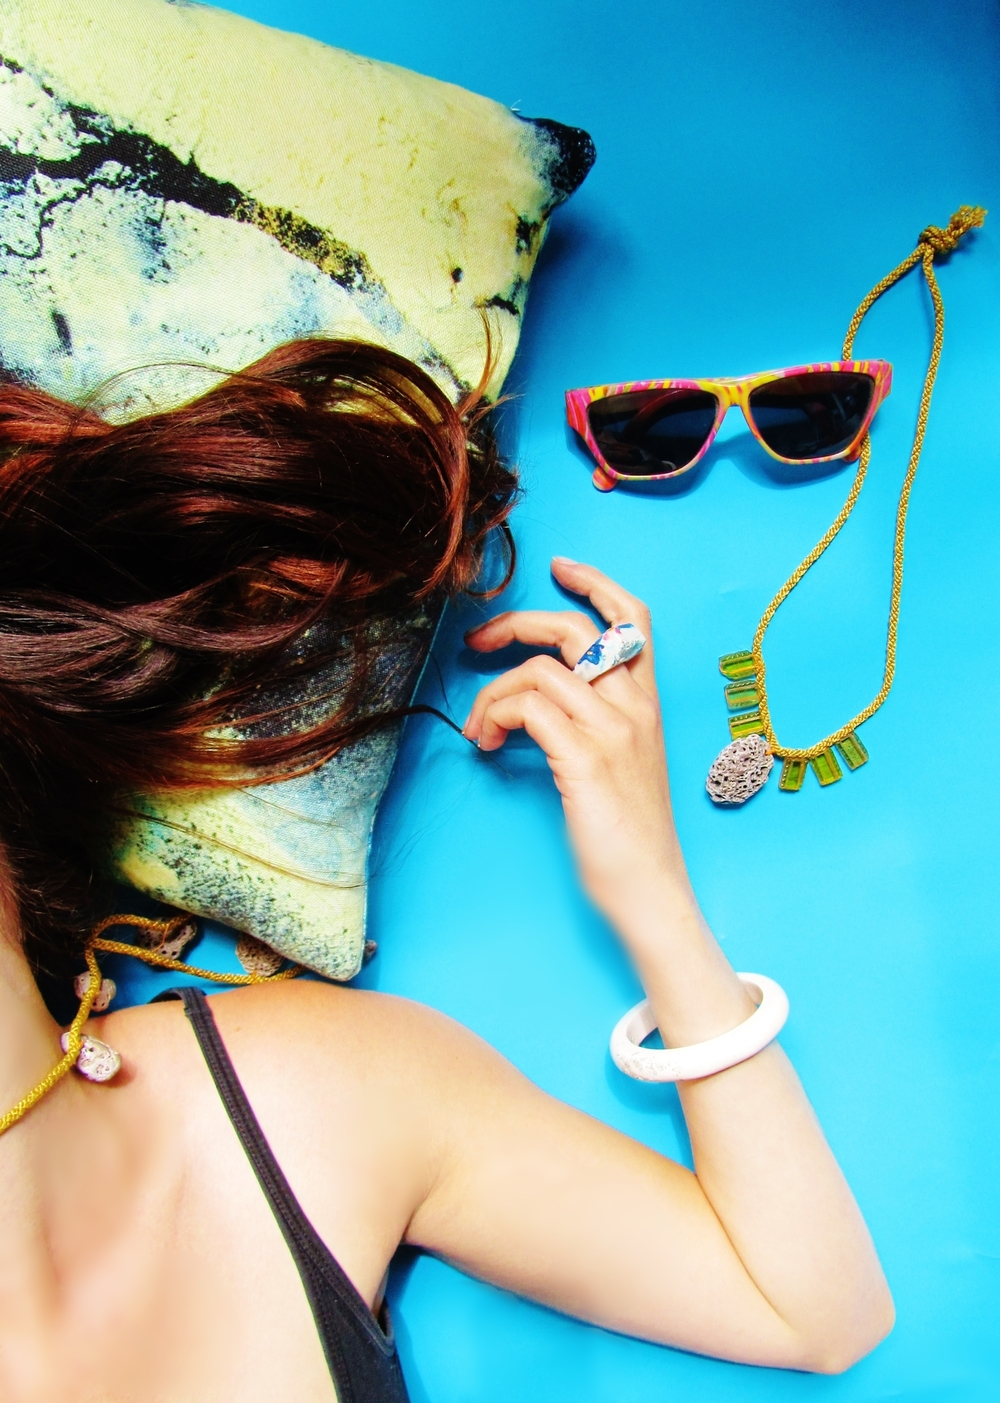 jade mellor blue background still life sunglasses mermaid hair cushion necklaces white bangle ring.JPG